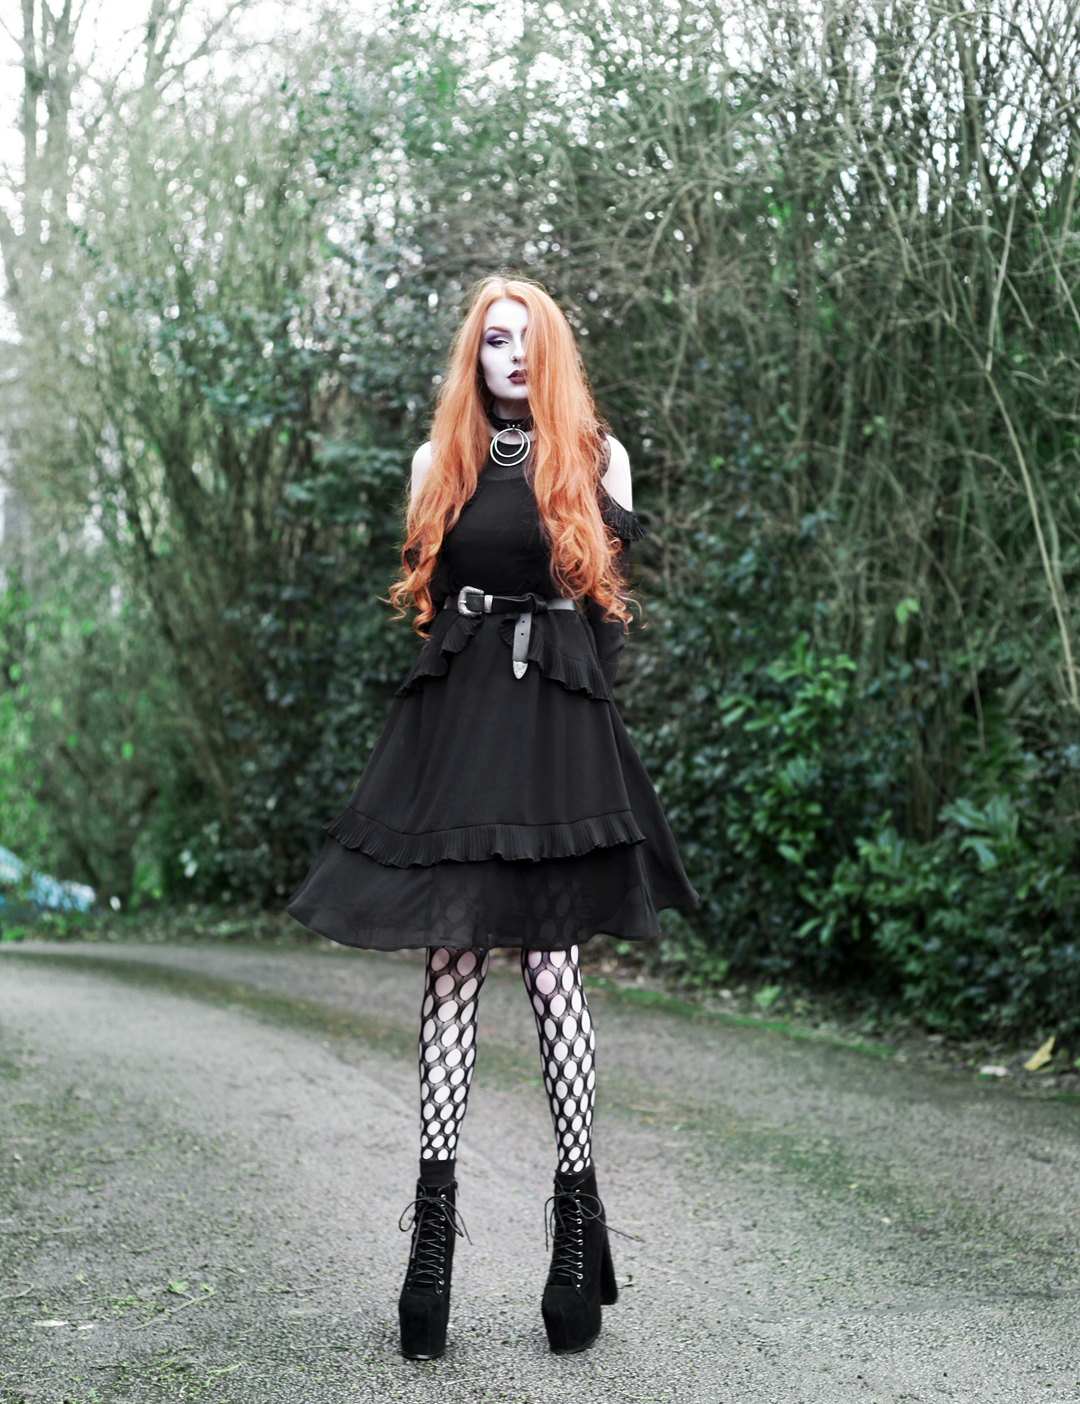 Olivia Emily wears Asos black ruffle midi dress, Killstar Dita Slave collar choker, Asos western belt, Asos pothole tights, and faux suede platform heels boots